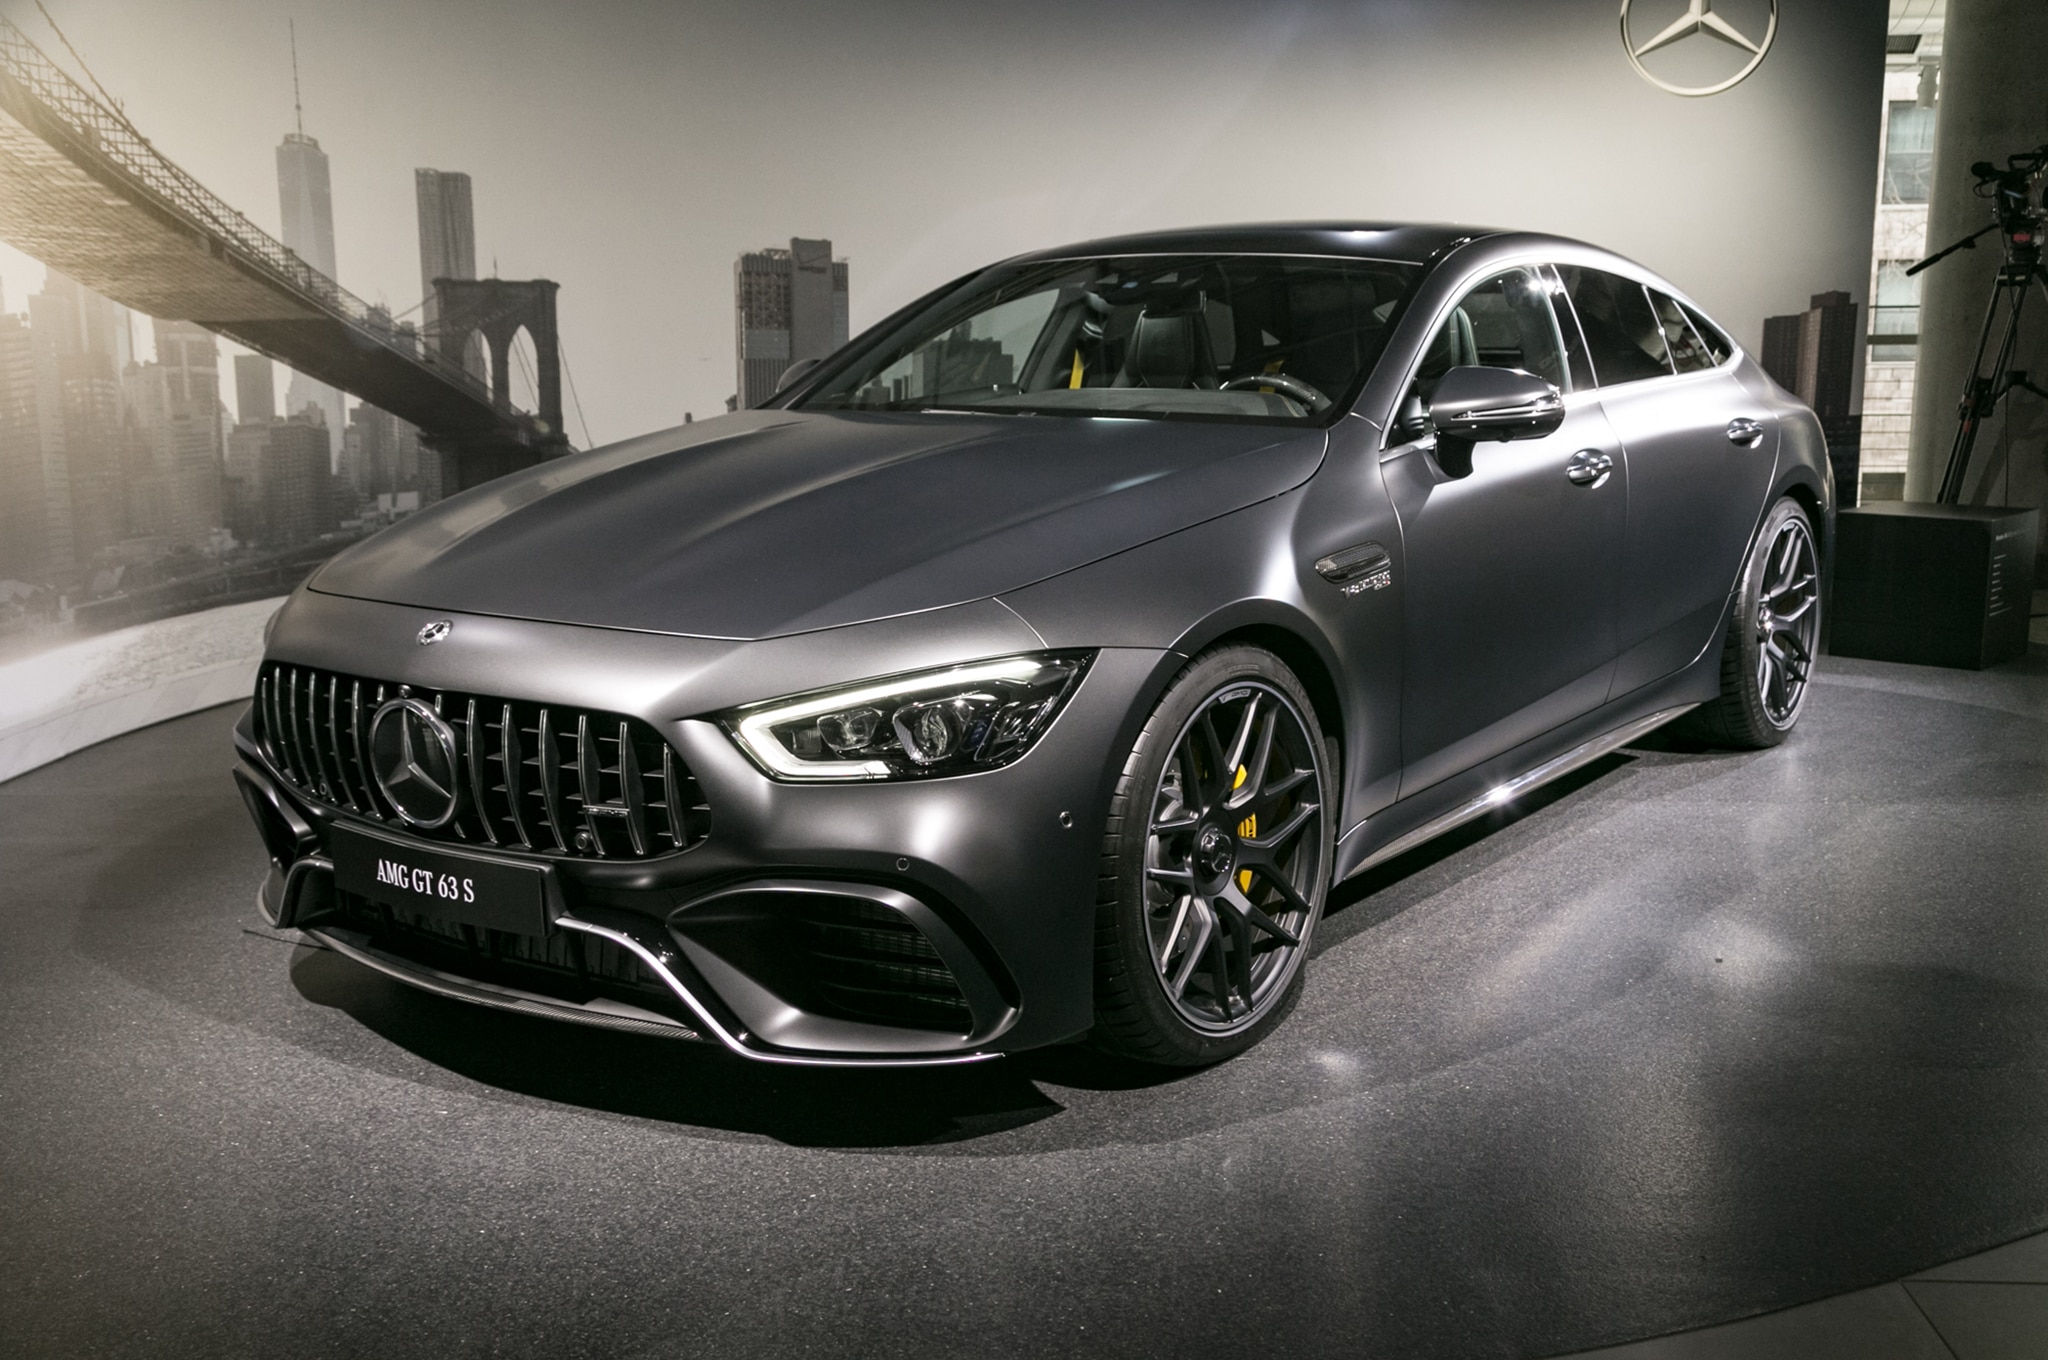 2019 Mercedes AMG GT 63 S 4 Door Coupe Front Three Quarter